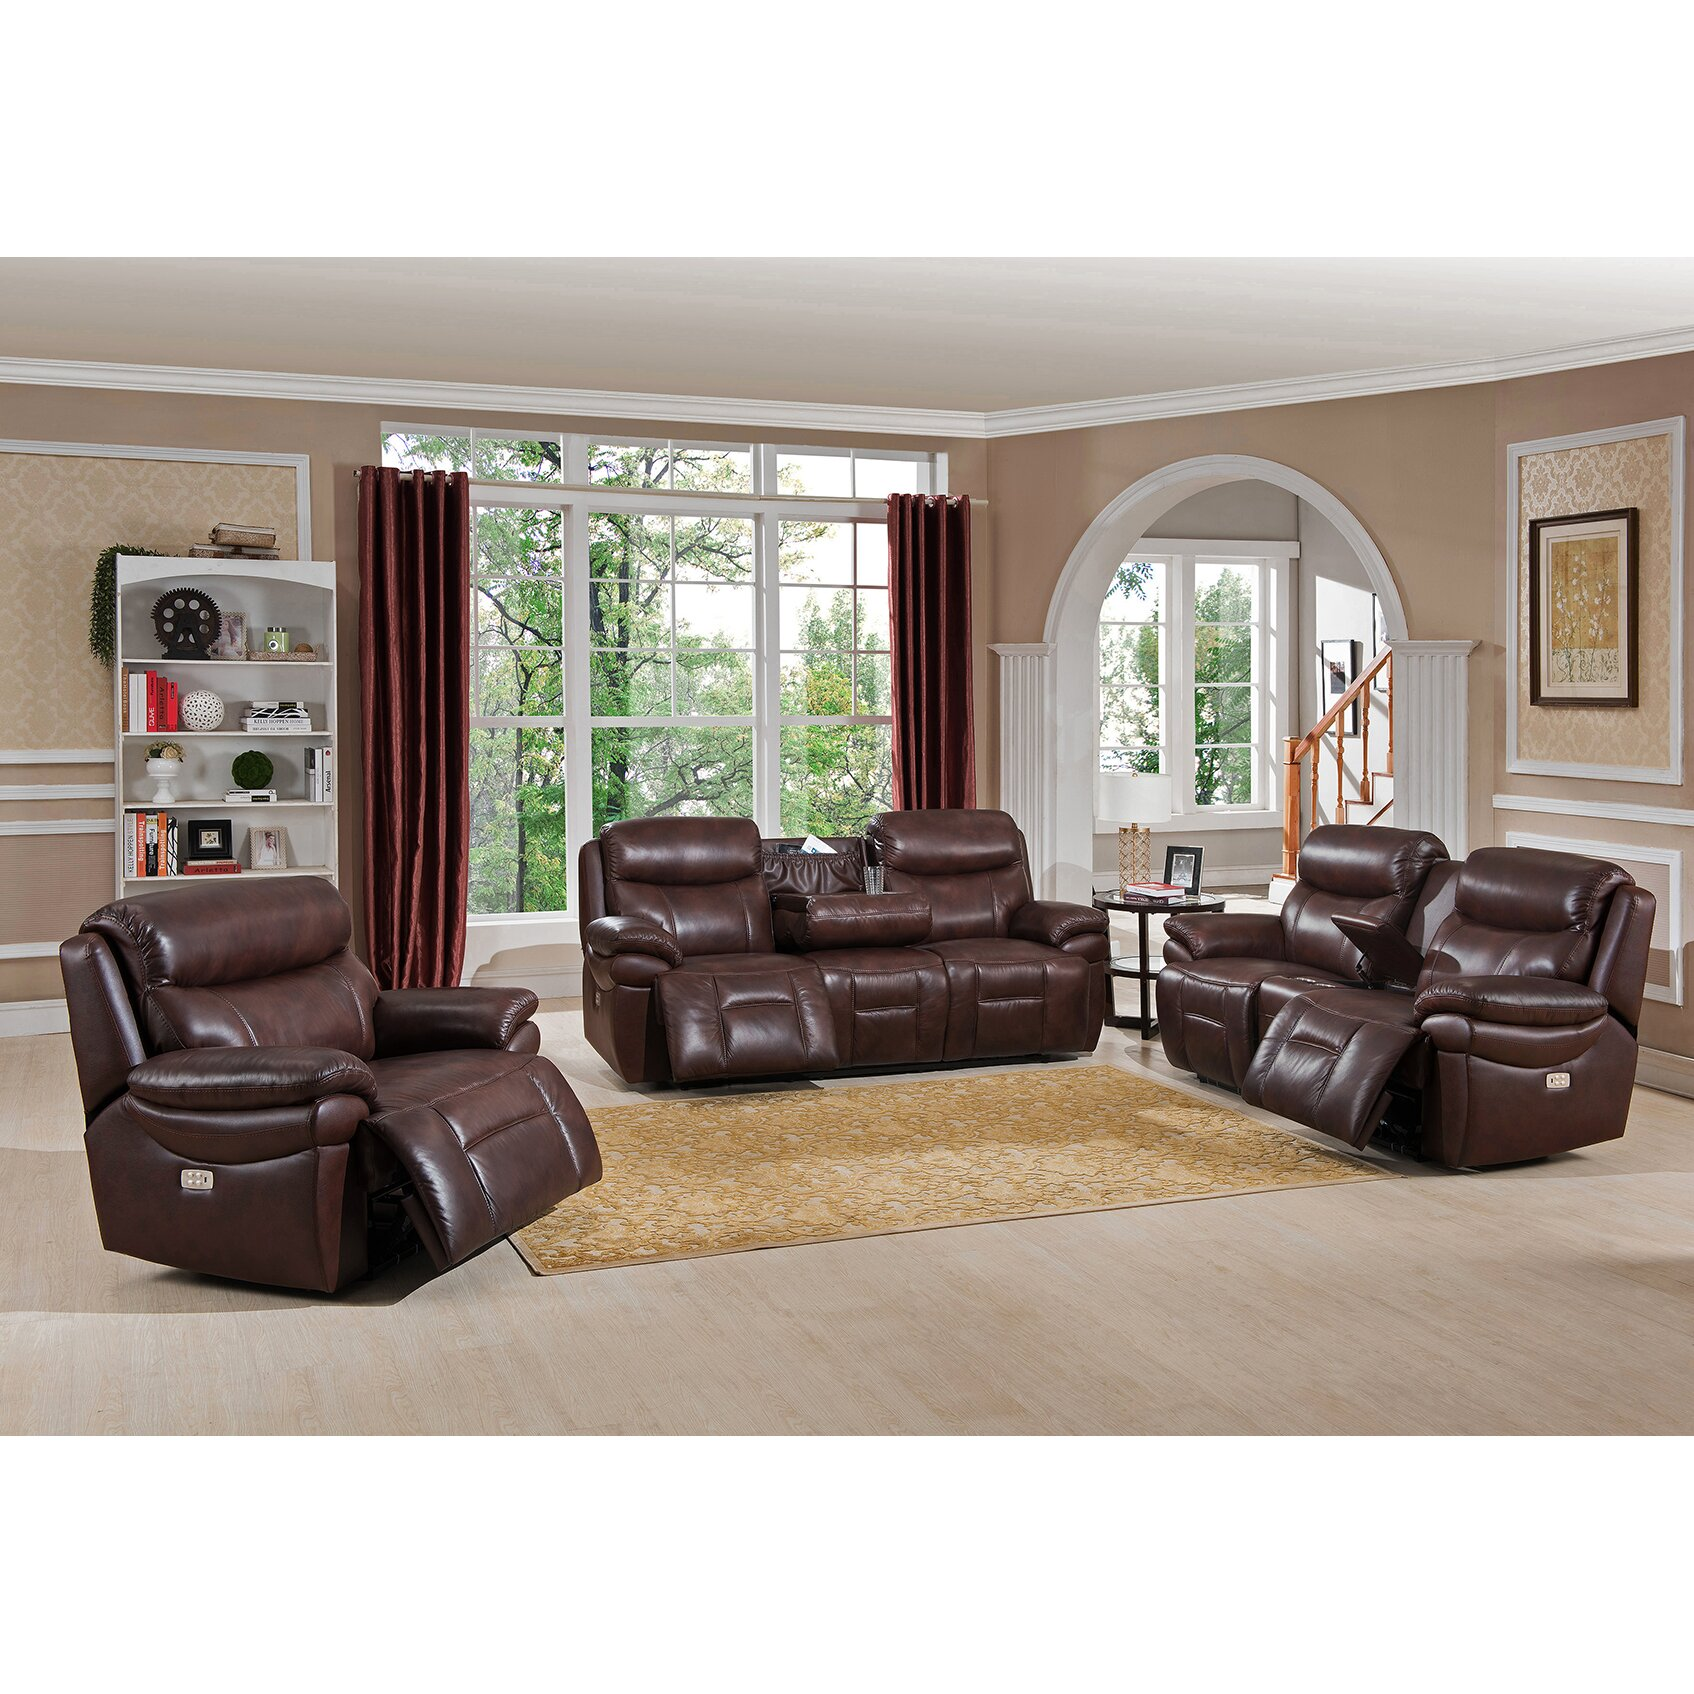 Amax sanford 3 piece leather power reclining living room for 3 piece living room set